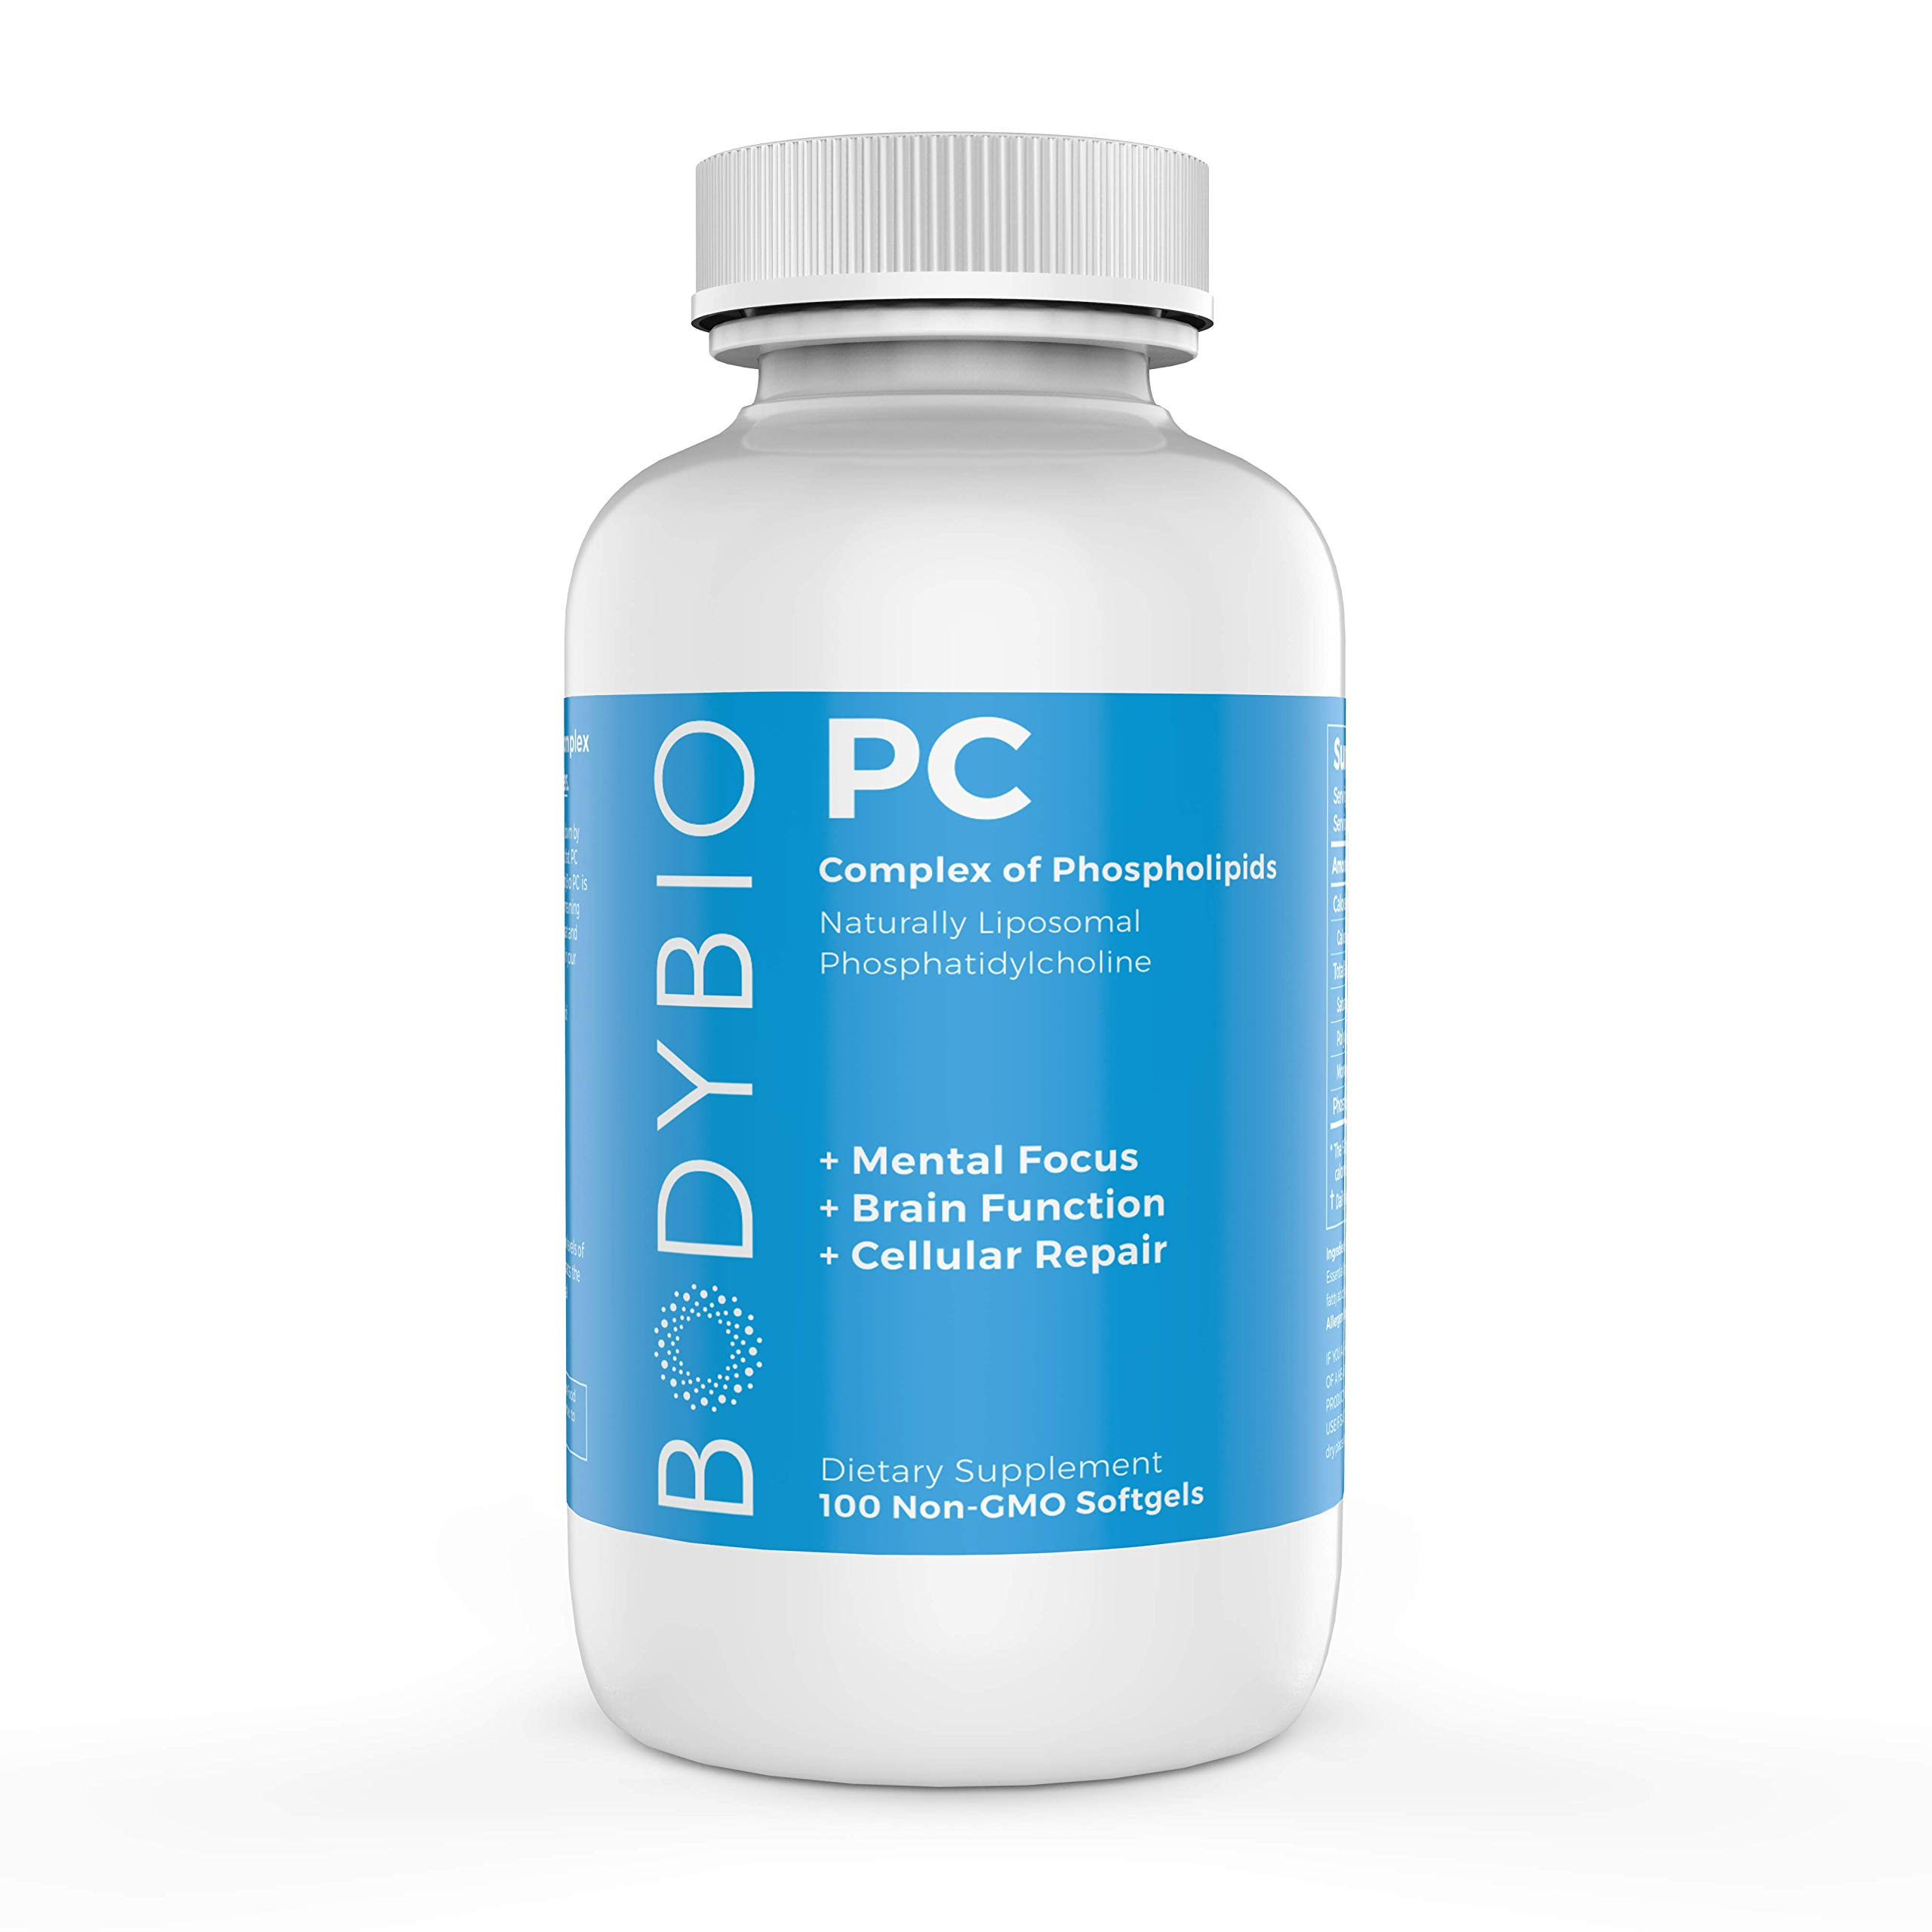 BodyBio - PC Phosphatidylcholine, Liposomal Phospholipid Complex for Cell Health - Enhance Brain Function, Focus, Memory & Clarity - Microbiome Support - Science & Research Backed - 100 Softgels by BodyBio